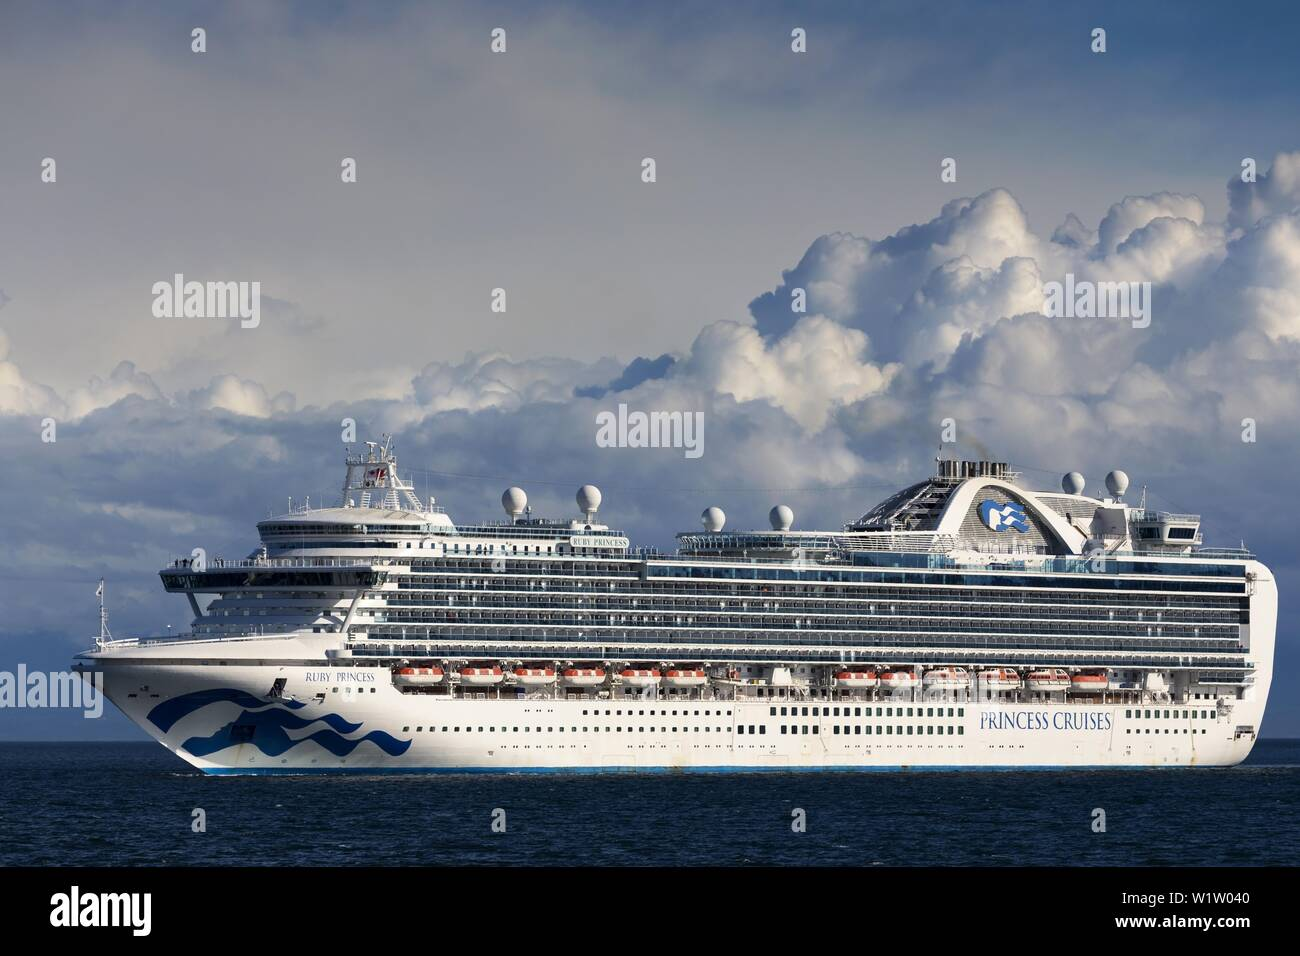 princess-cruises-big-white-luxury-cruise